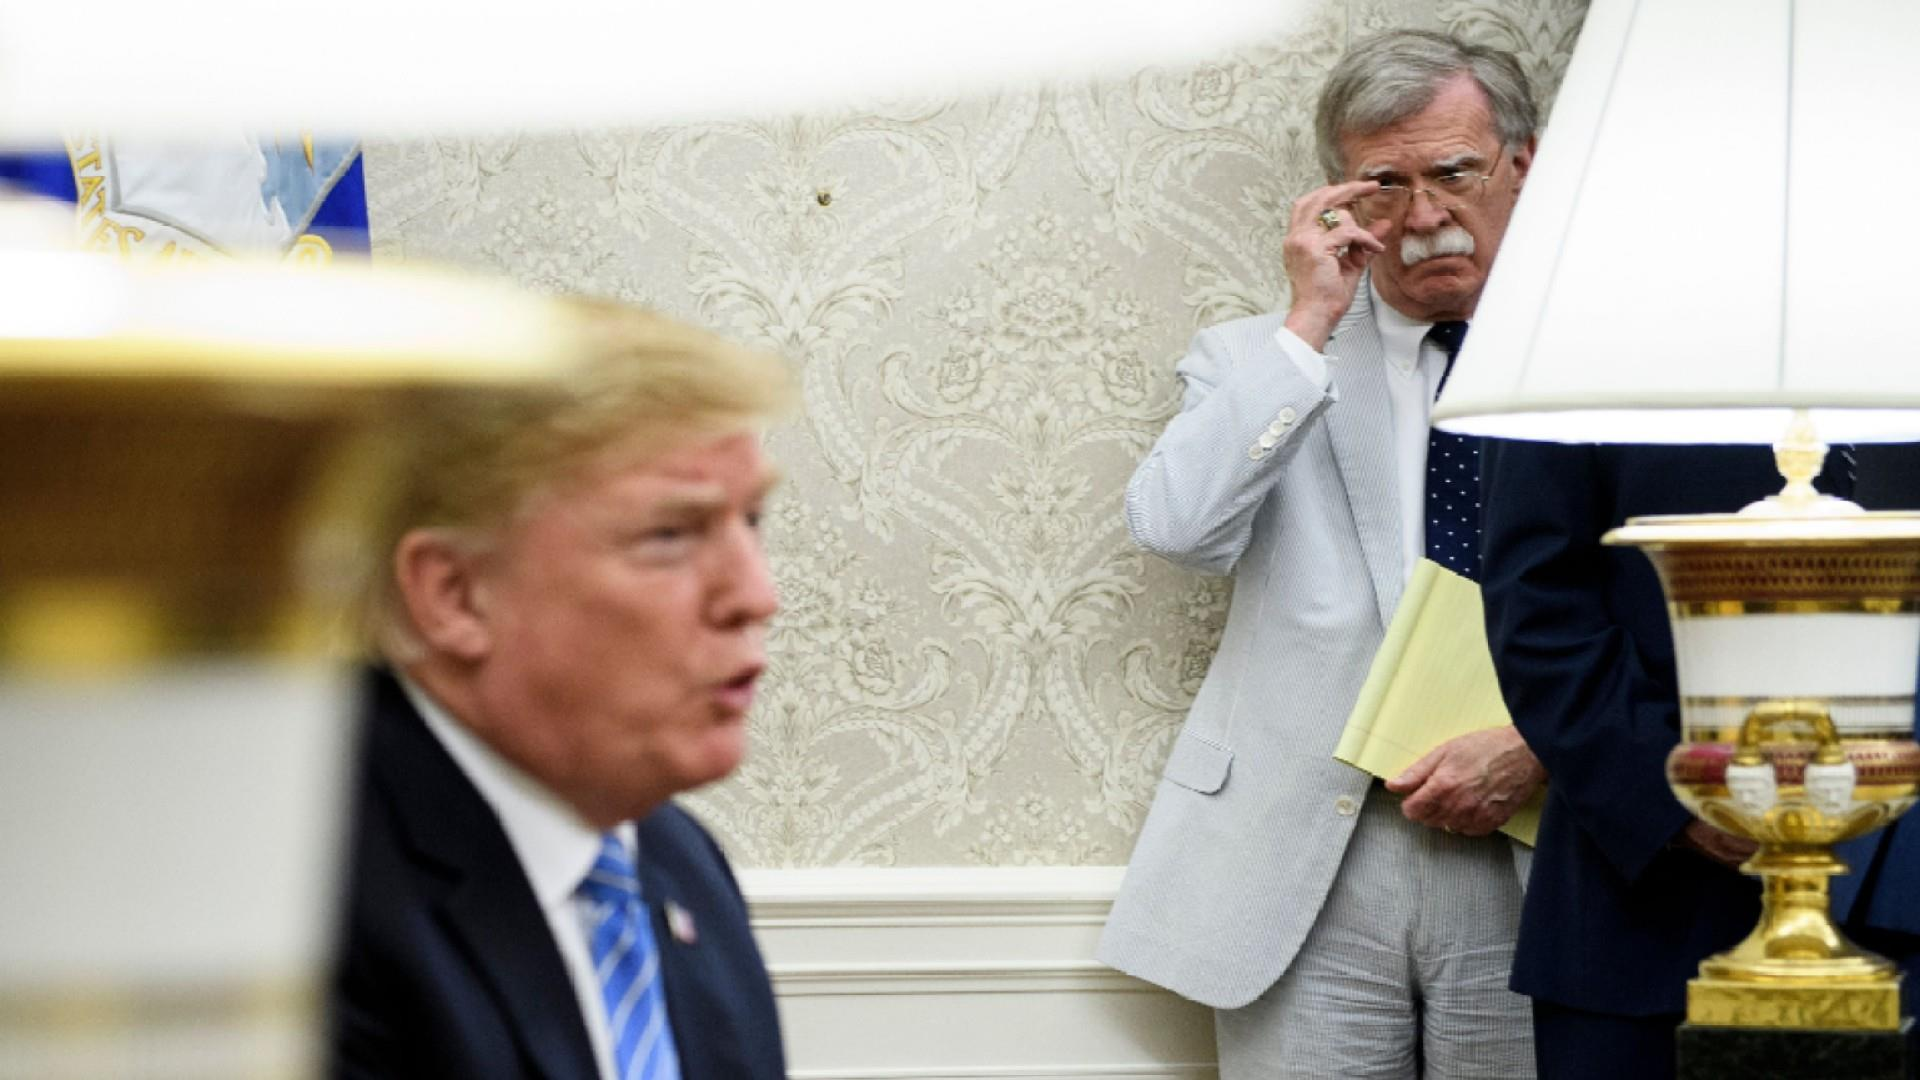 NYT: John Bolton ordered Trump aide to alert WH lawyers about Ukraine